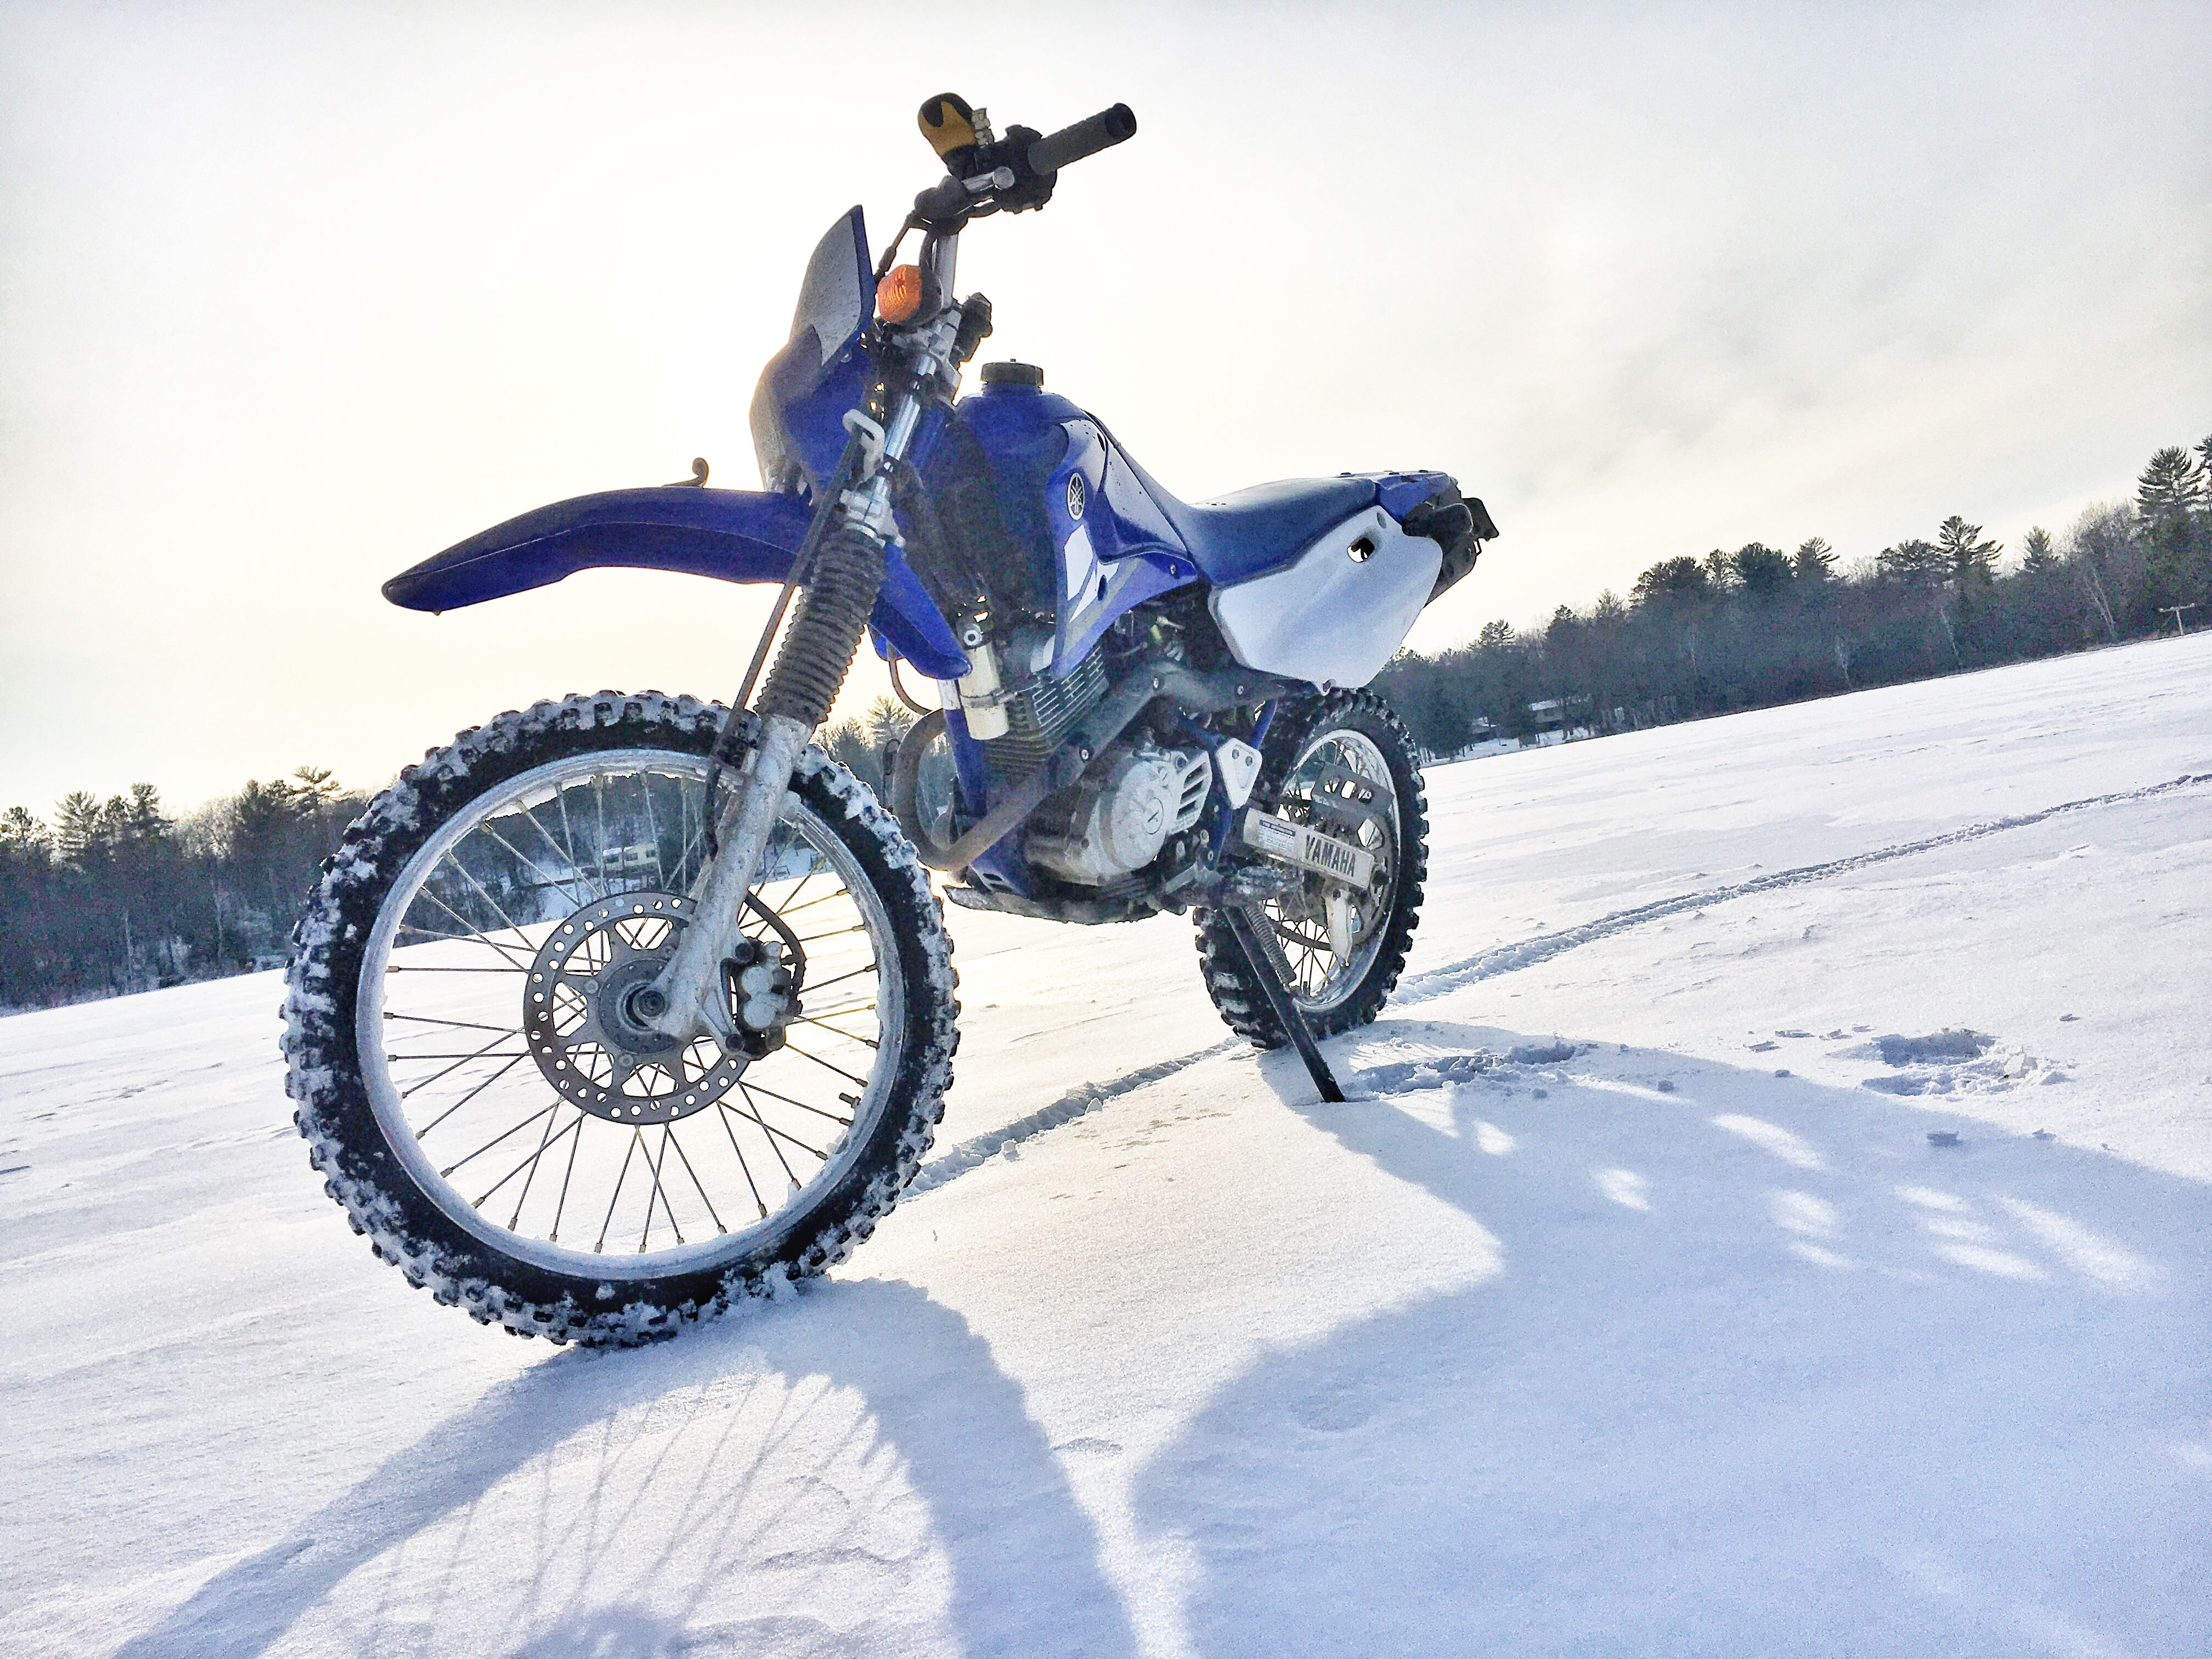 small resolution of the lake cruising yamaha ttr 125l makes heading back to the cottage a breeze after a long day on the ice